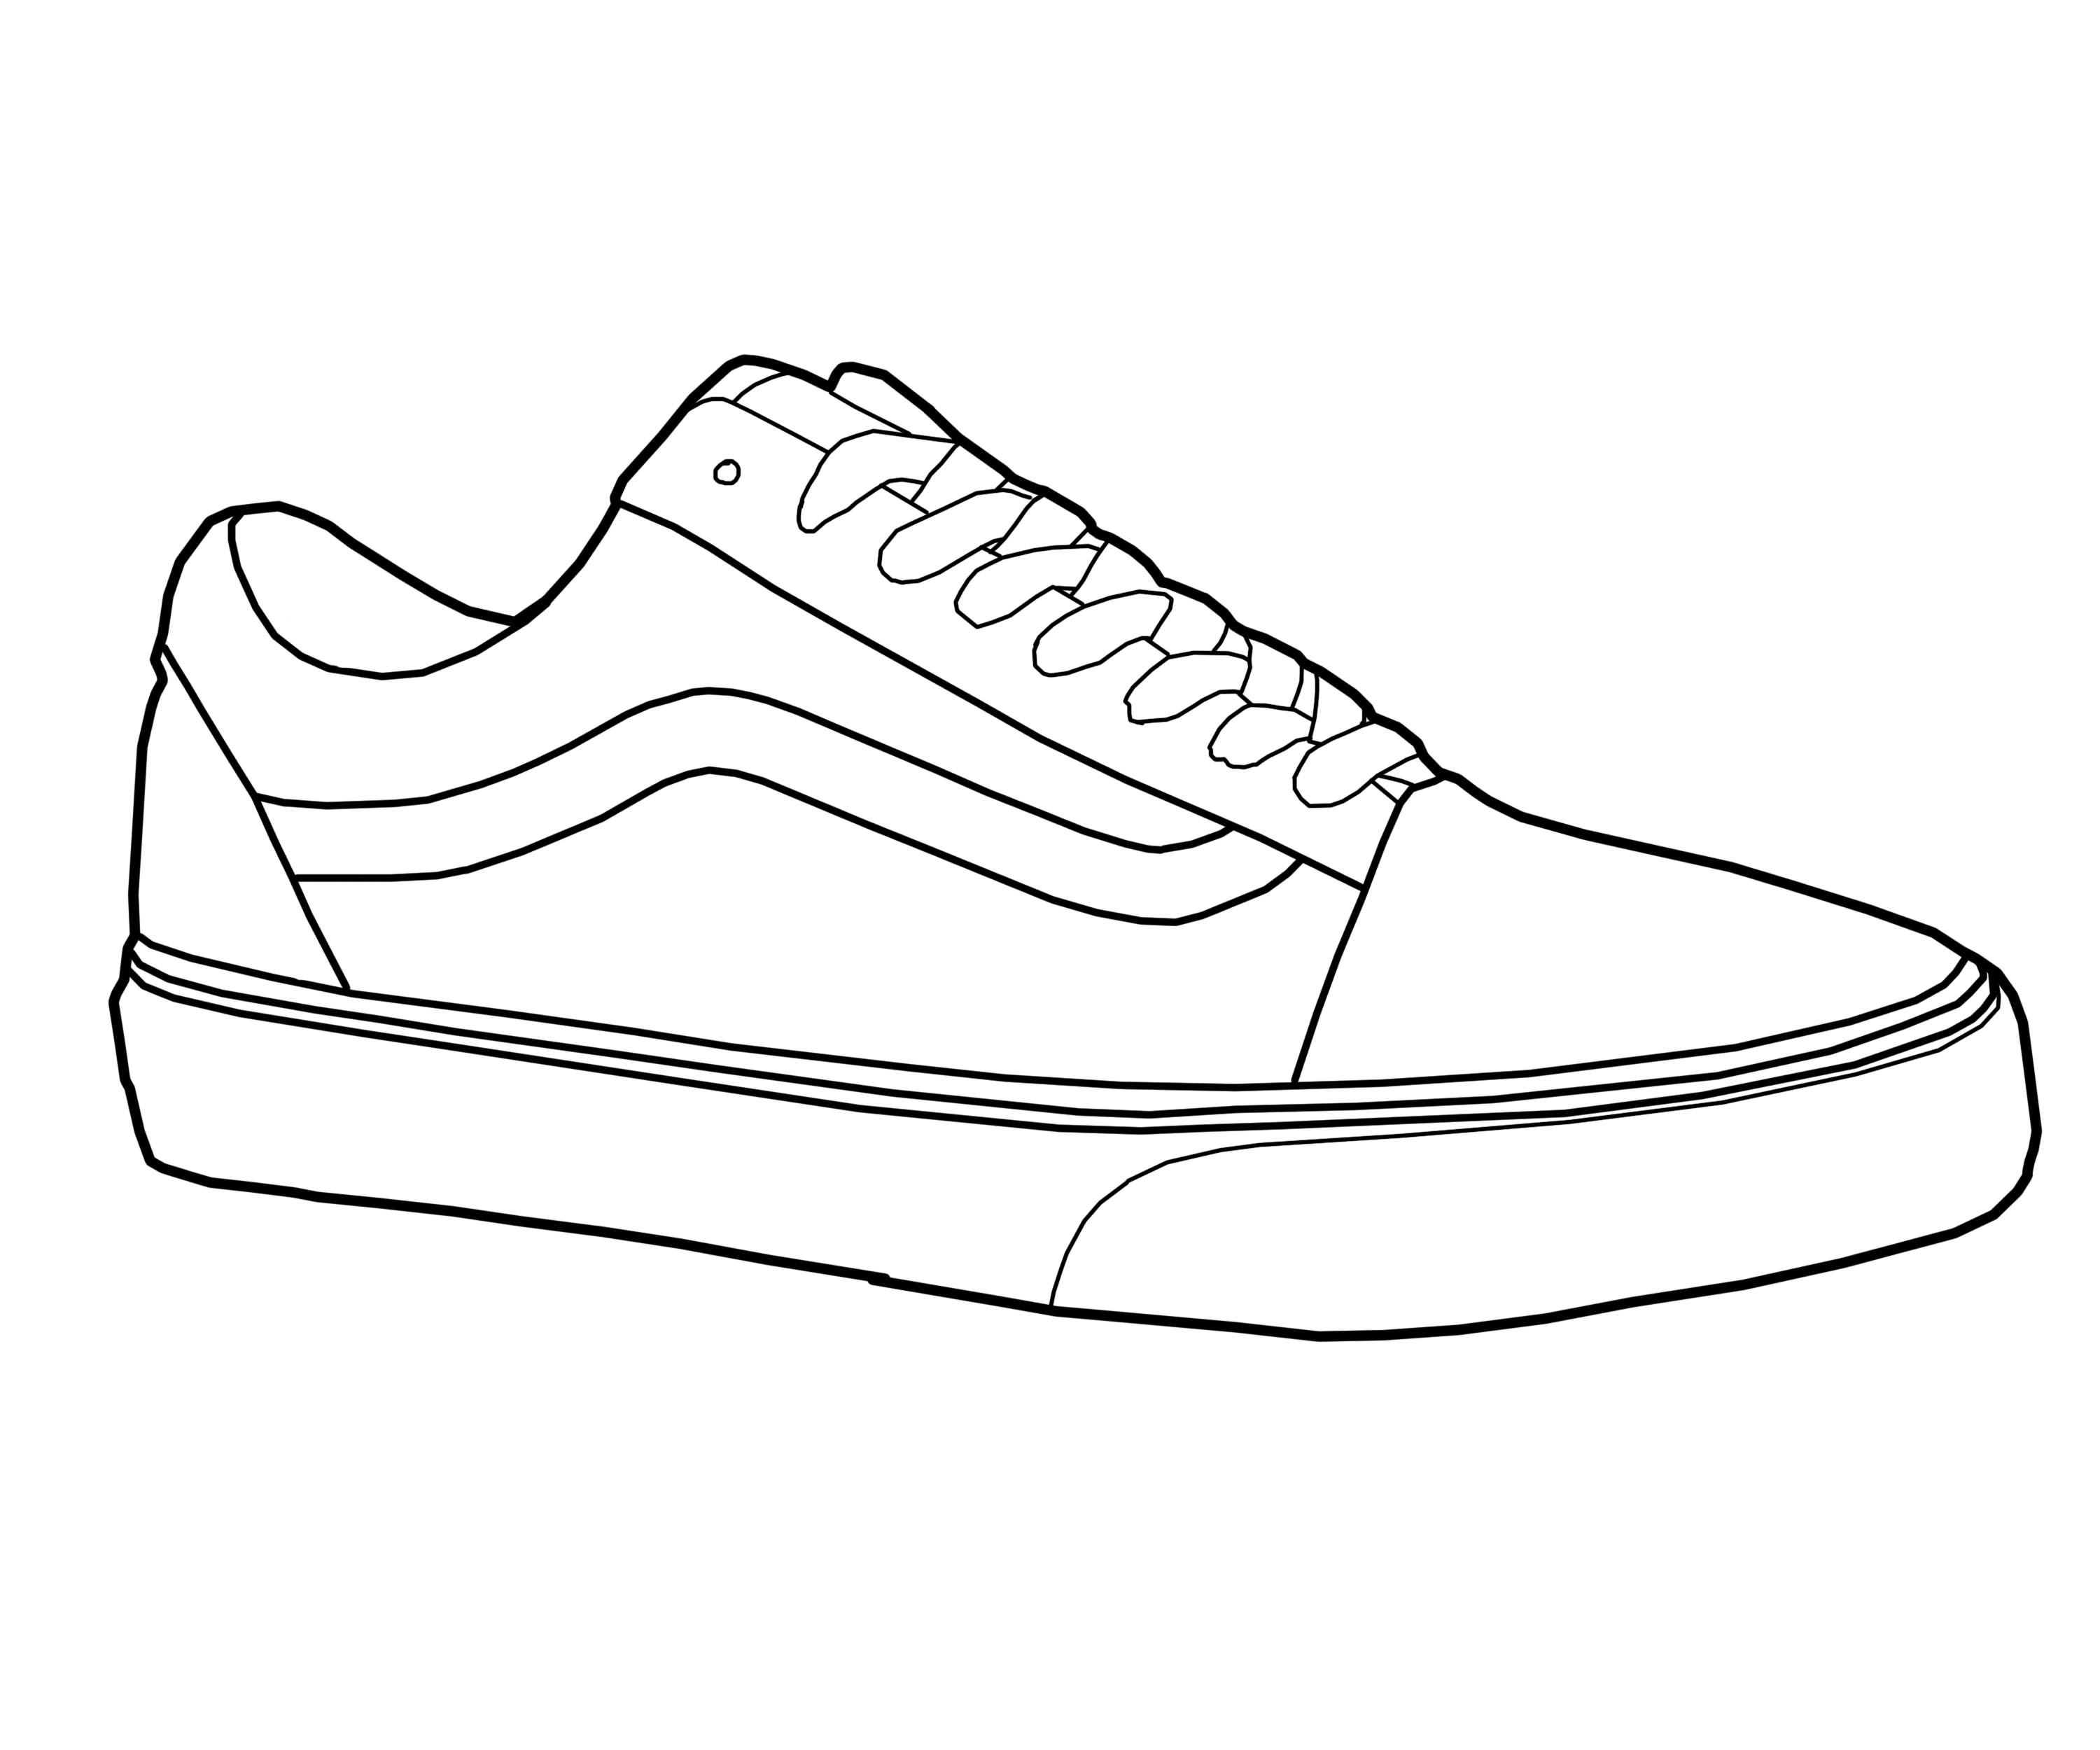 Gym shoes in sneakers. Converse clipart vans shoe